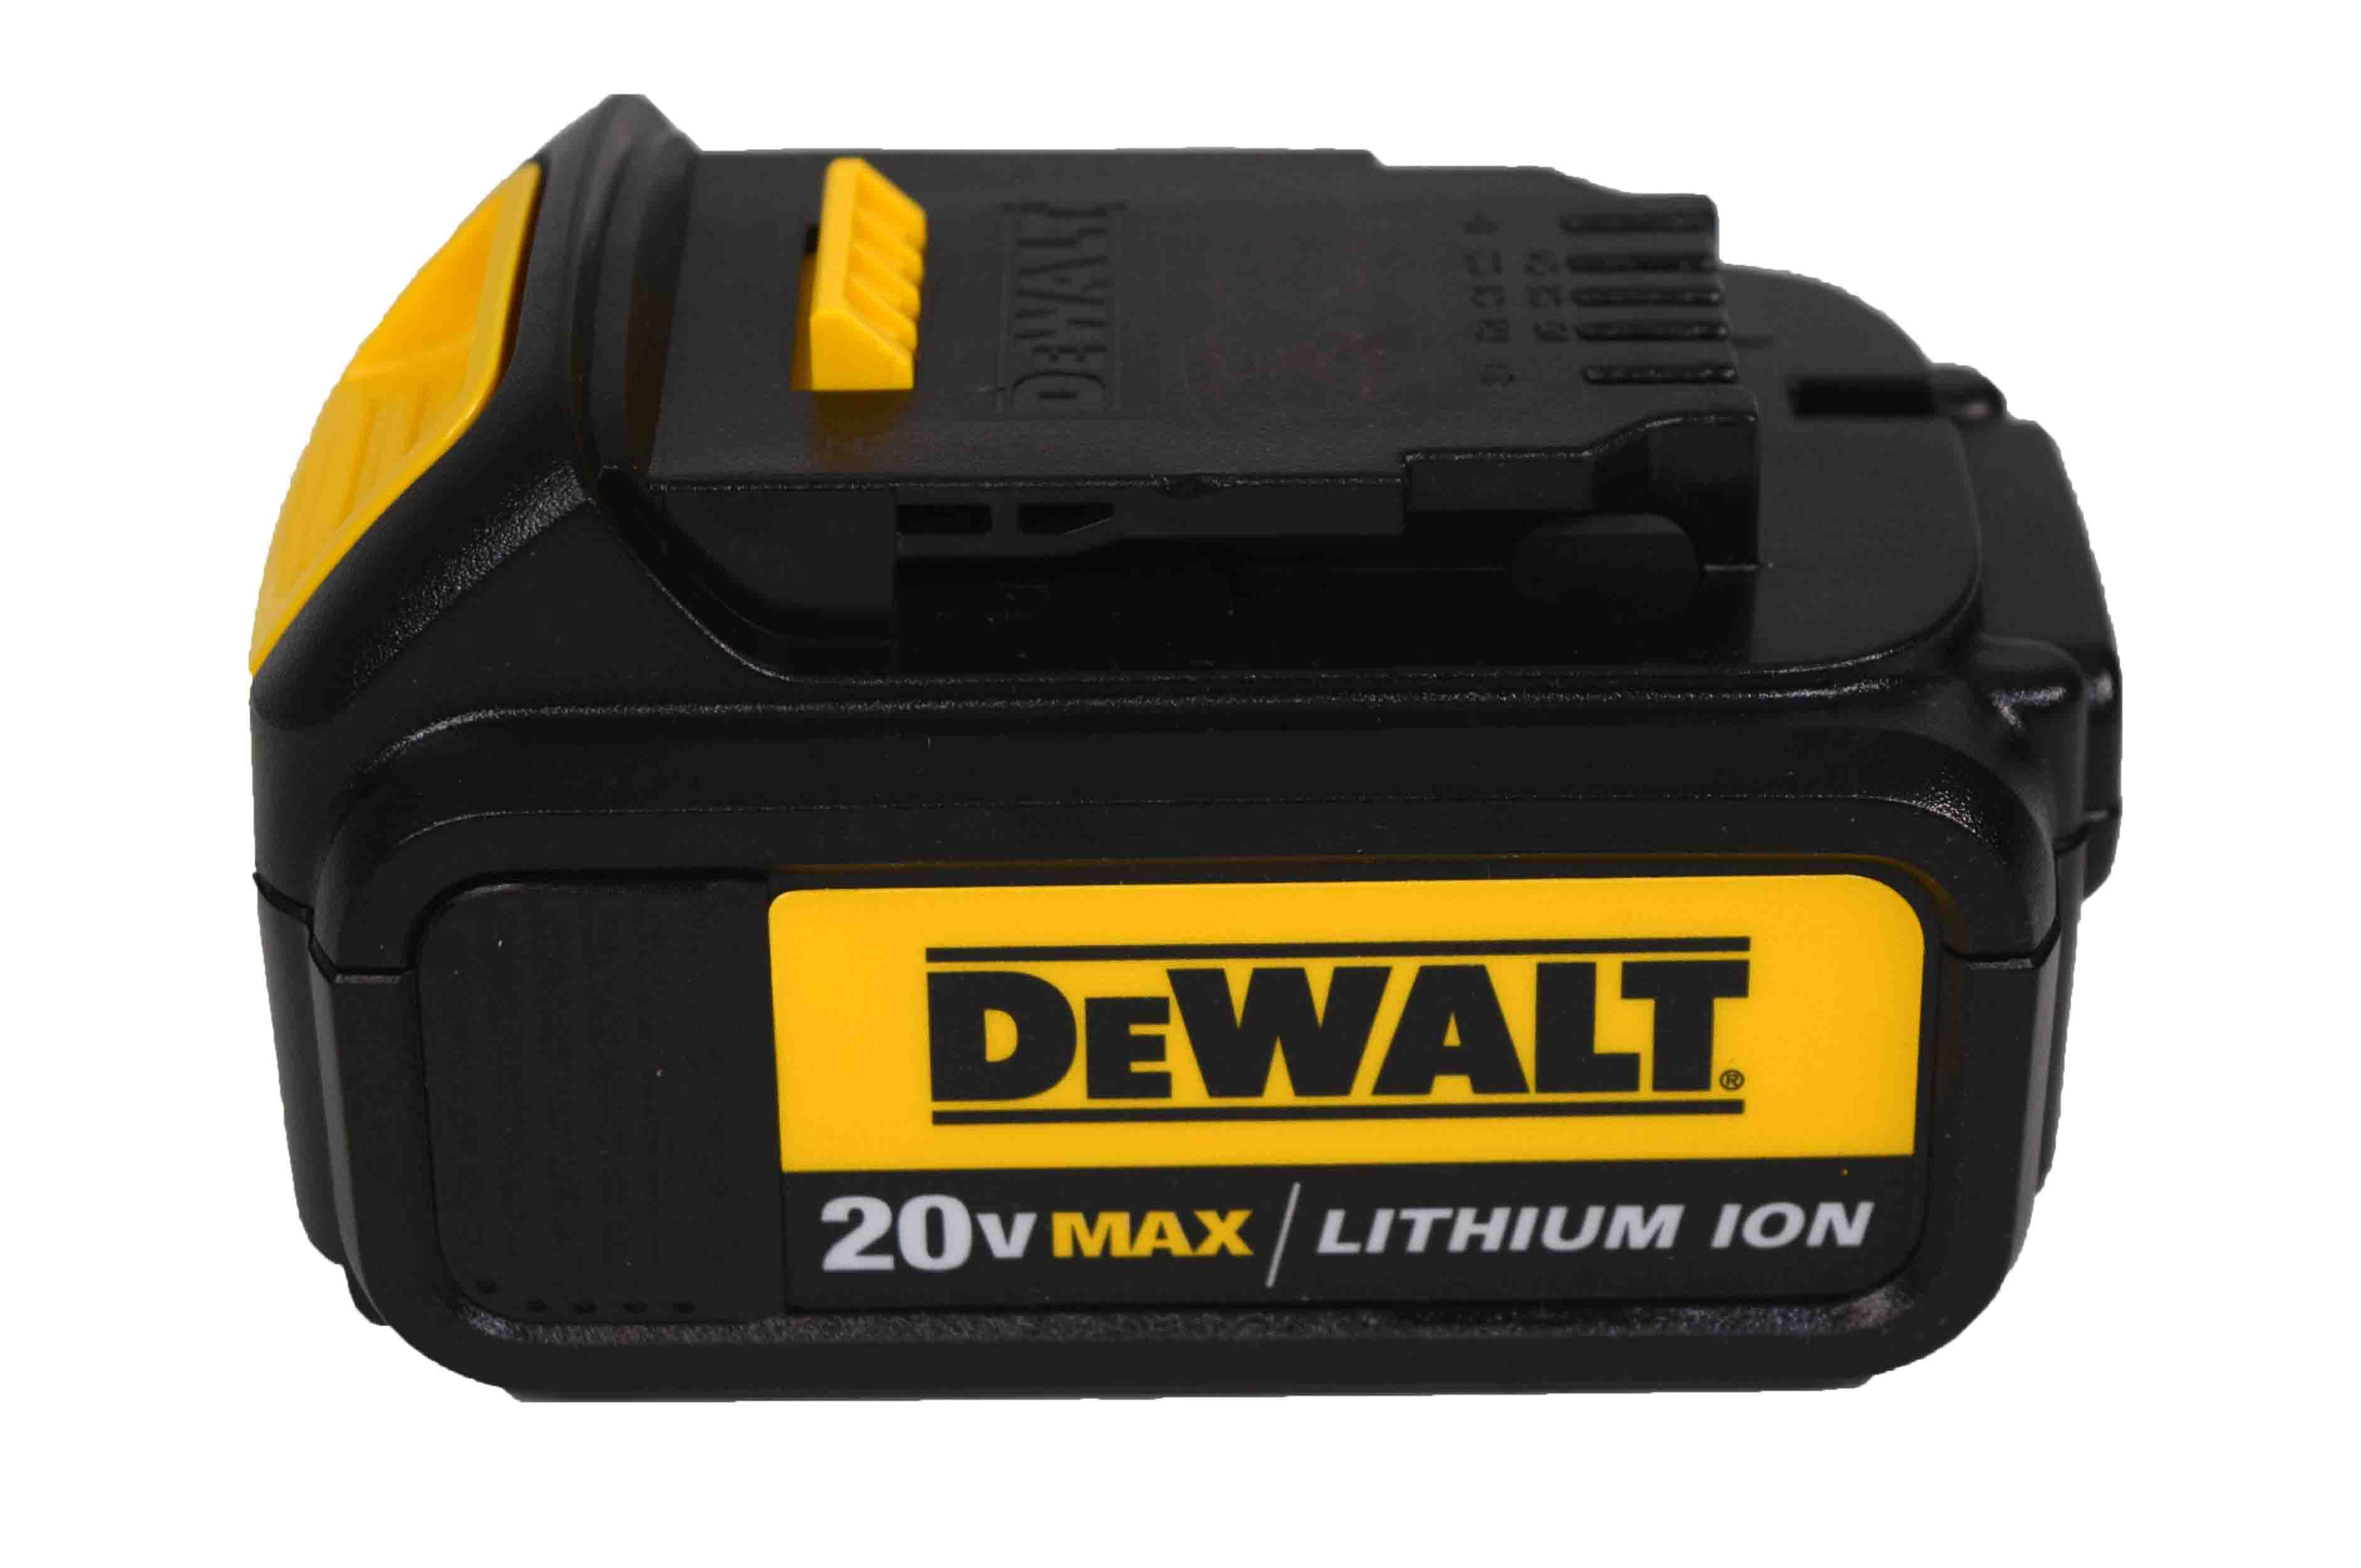 Dewalt-Dcb200-20-Volt-3-Ah-Lithium-Ion-Battery-Single-Pack-image-1